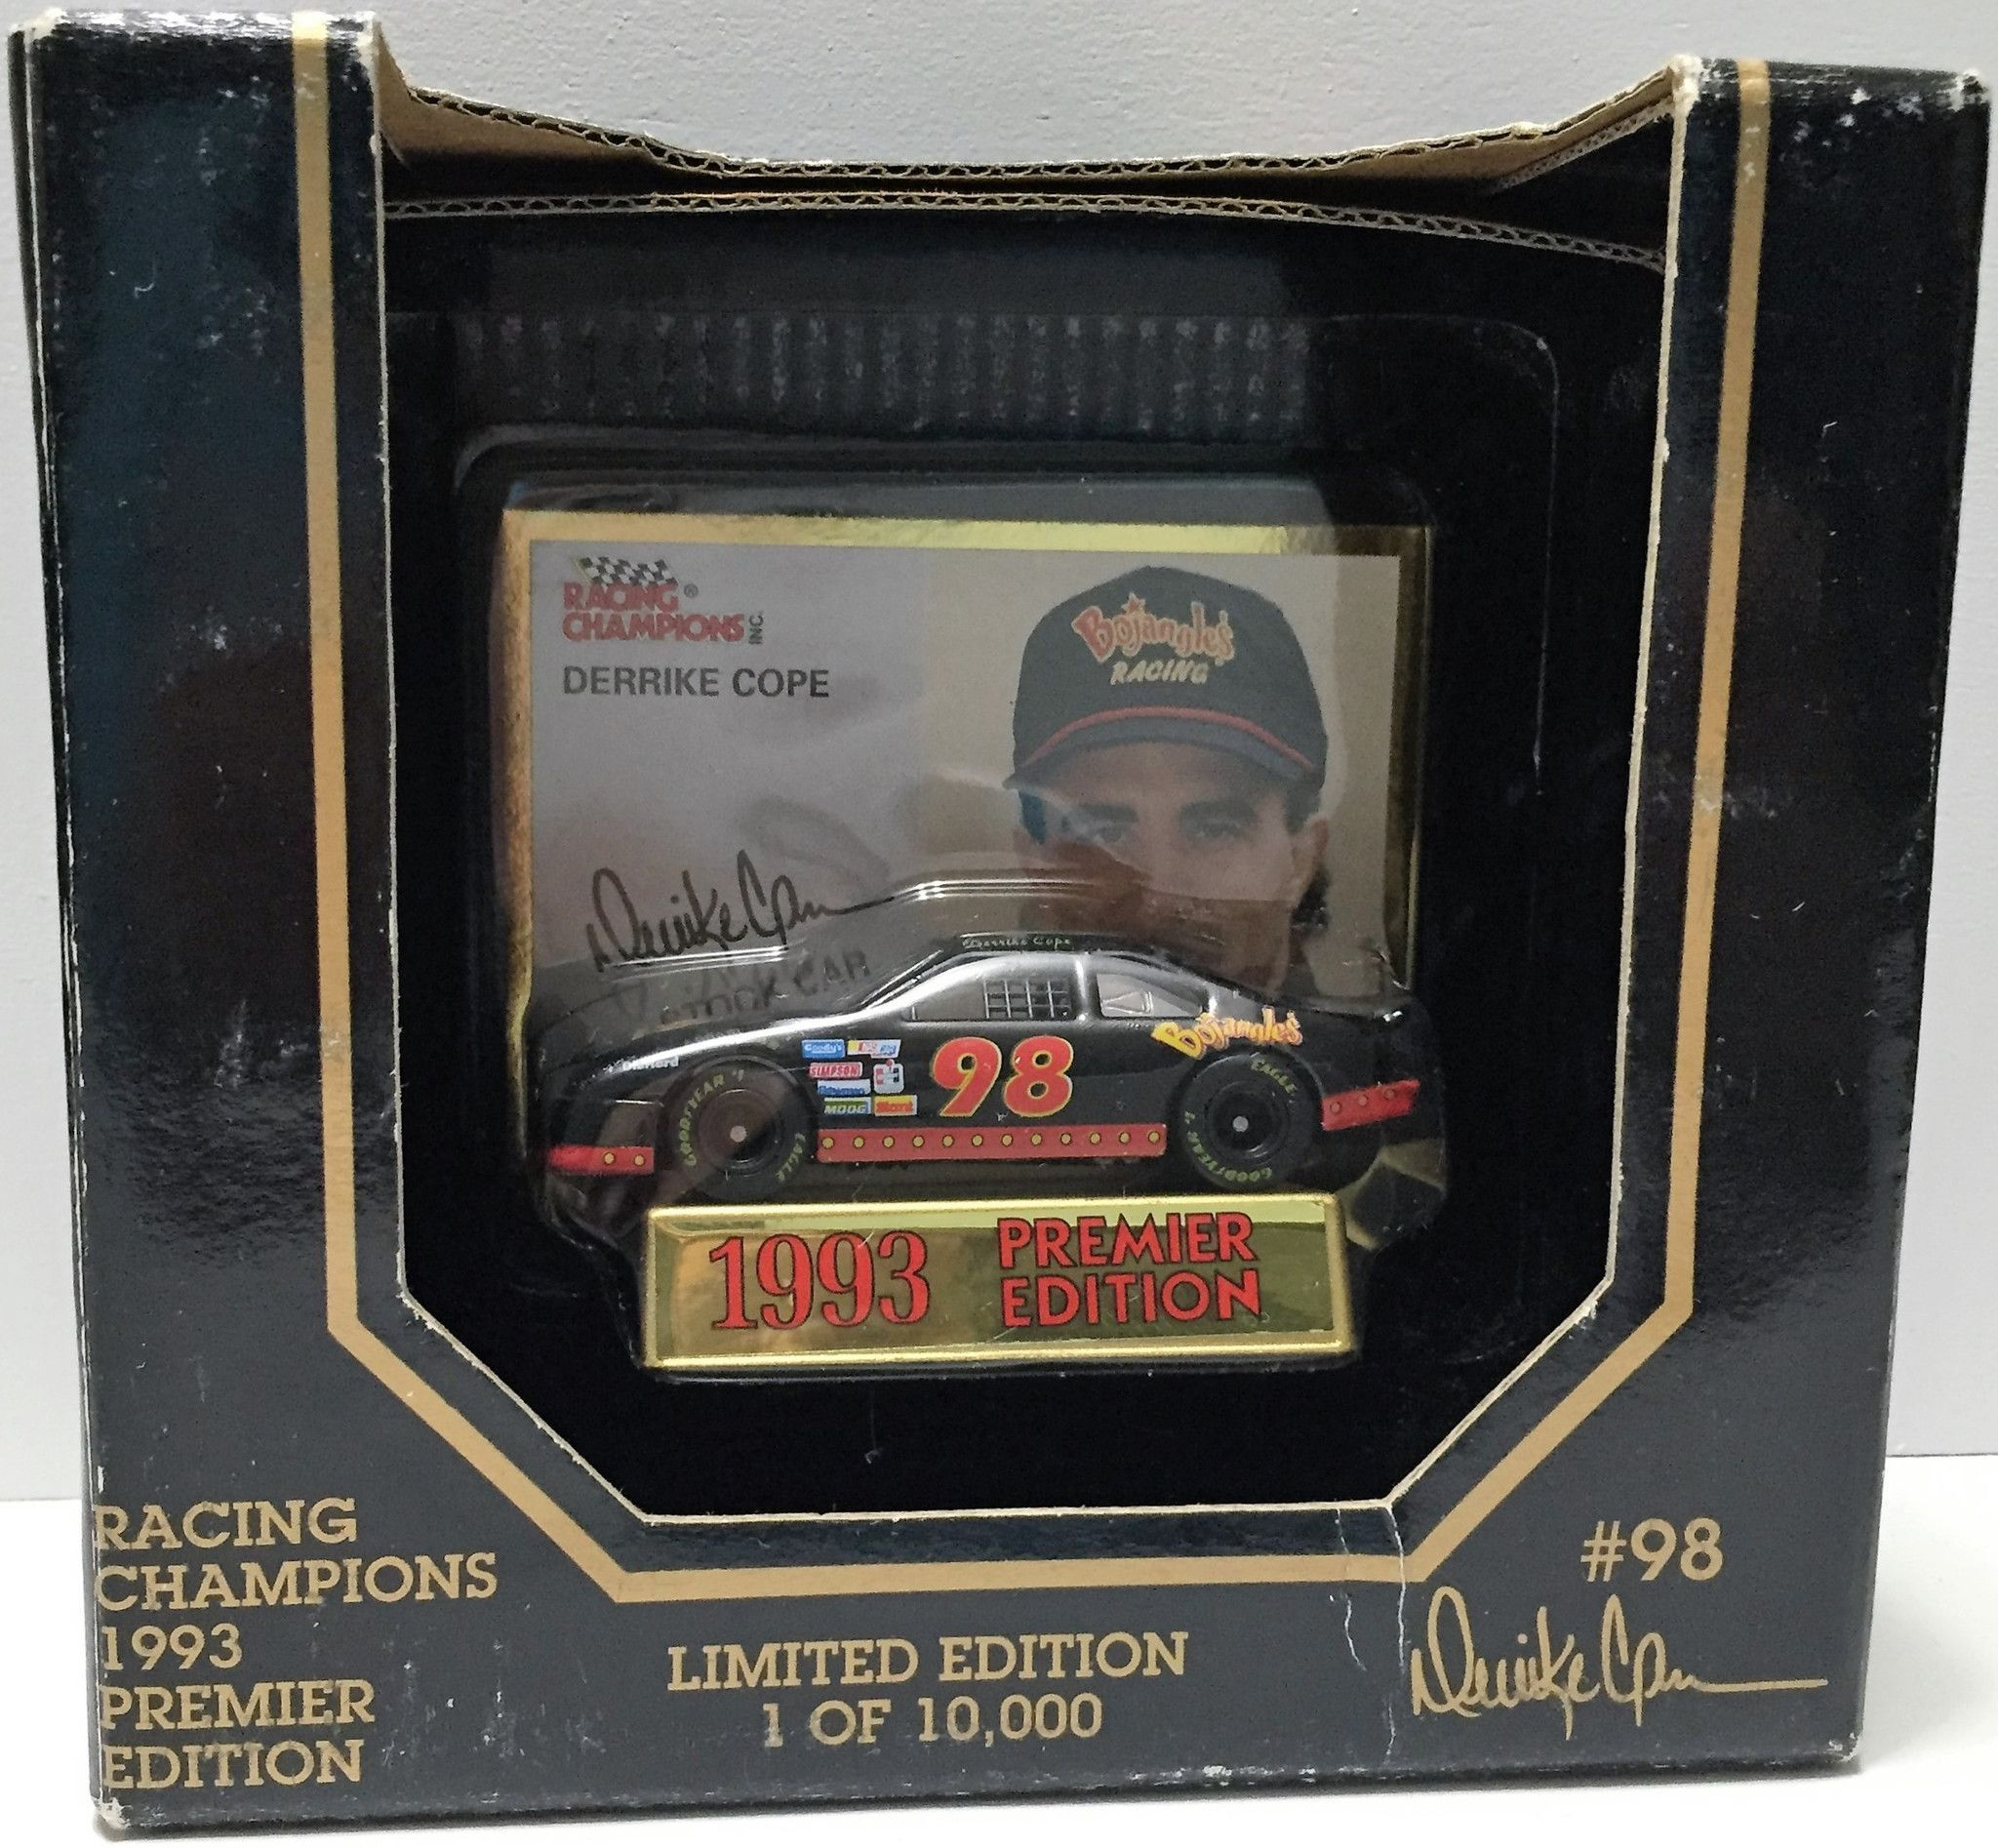 (TAS033688) - 1993 Racing Champions Premier Edition Car - Derrike Cope